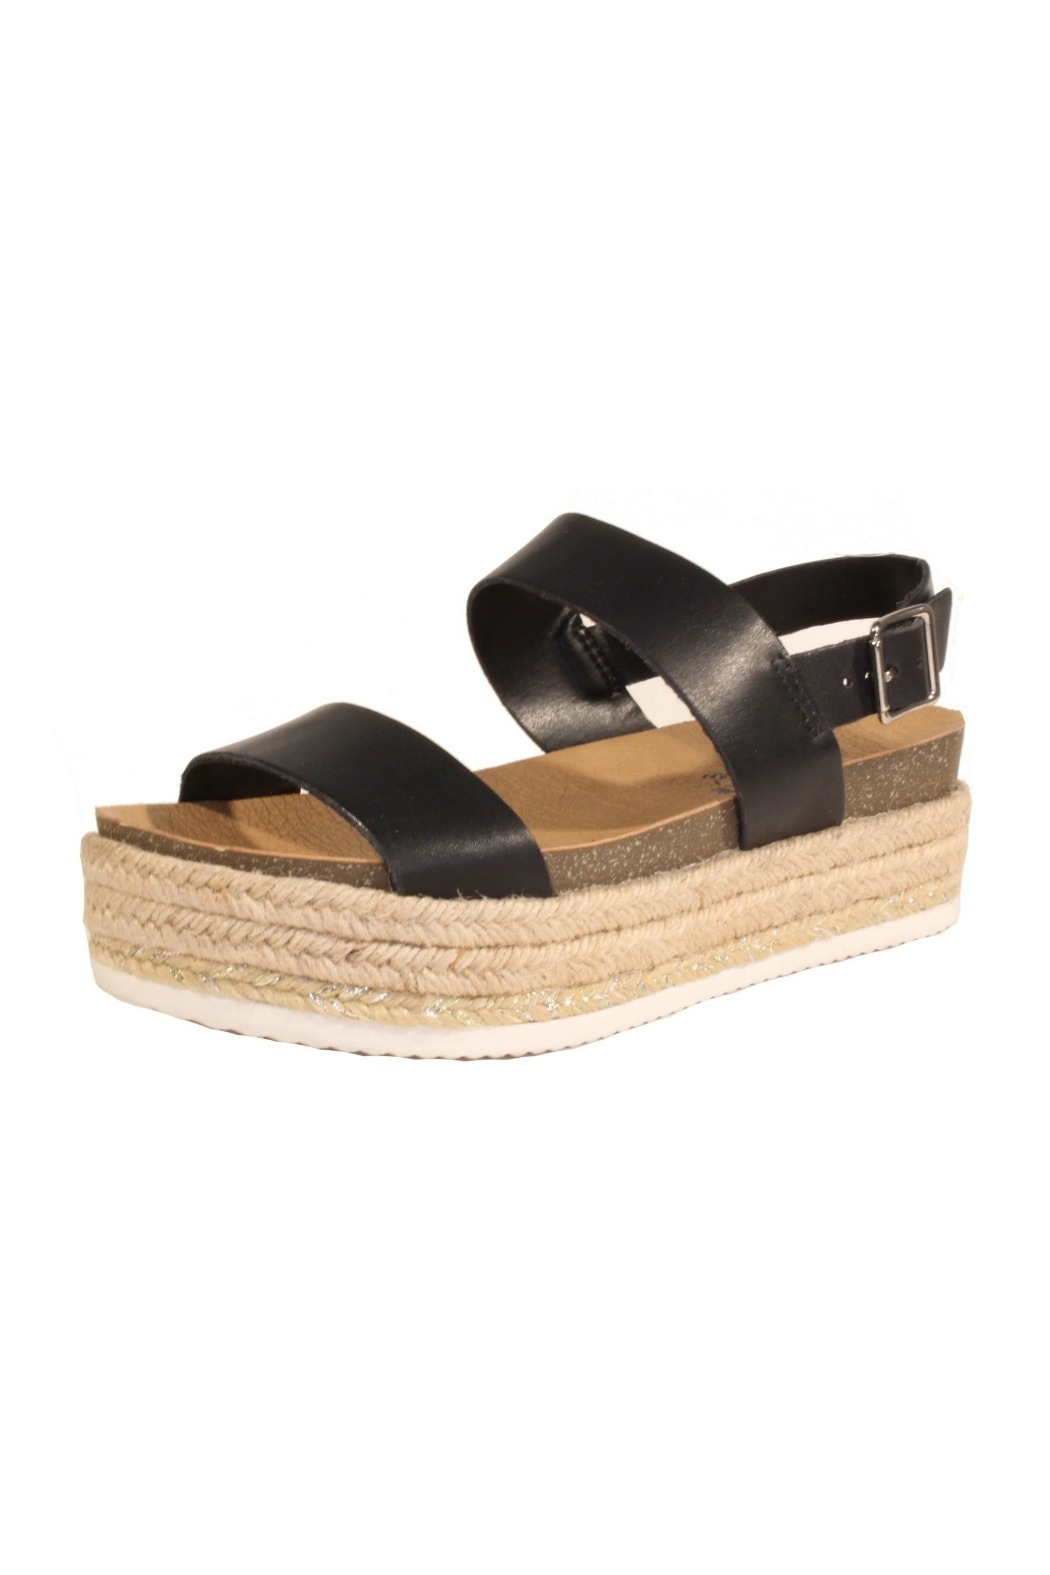 Colby Chelsea Sandals By Bella Platform Crew From Louisiana l1KJcF